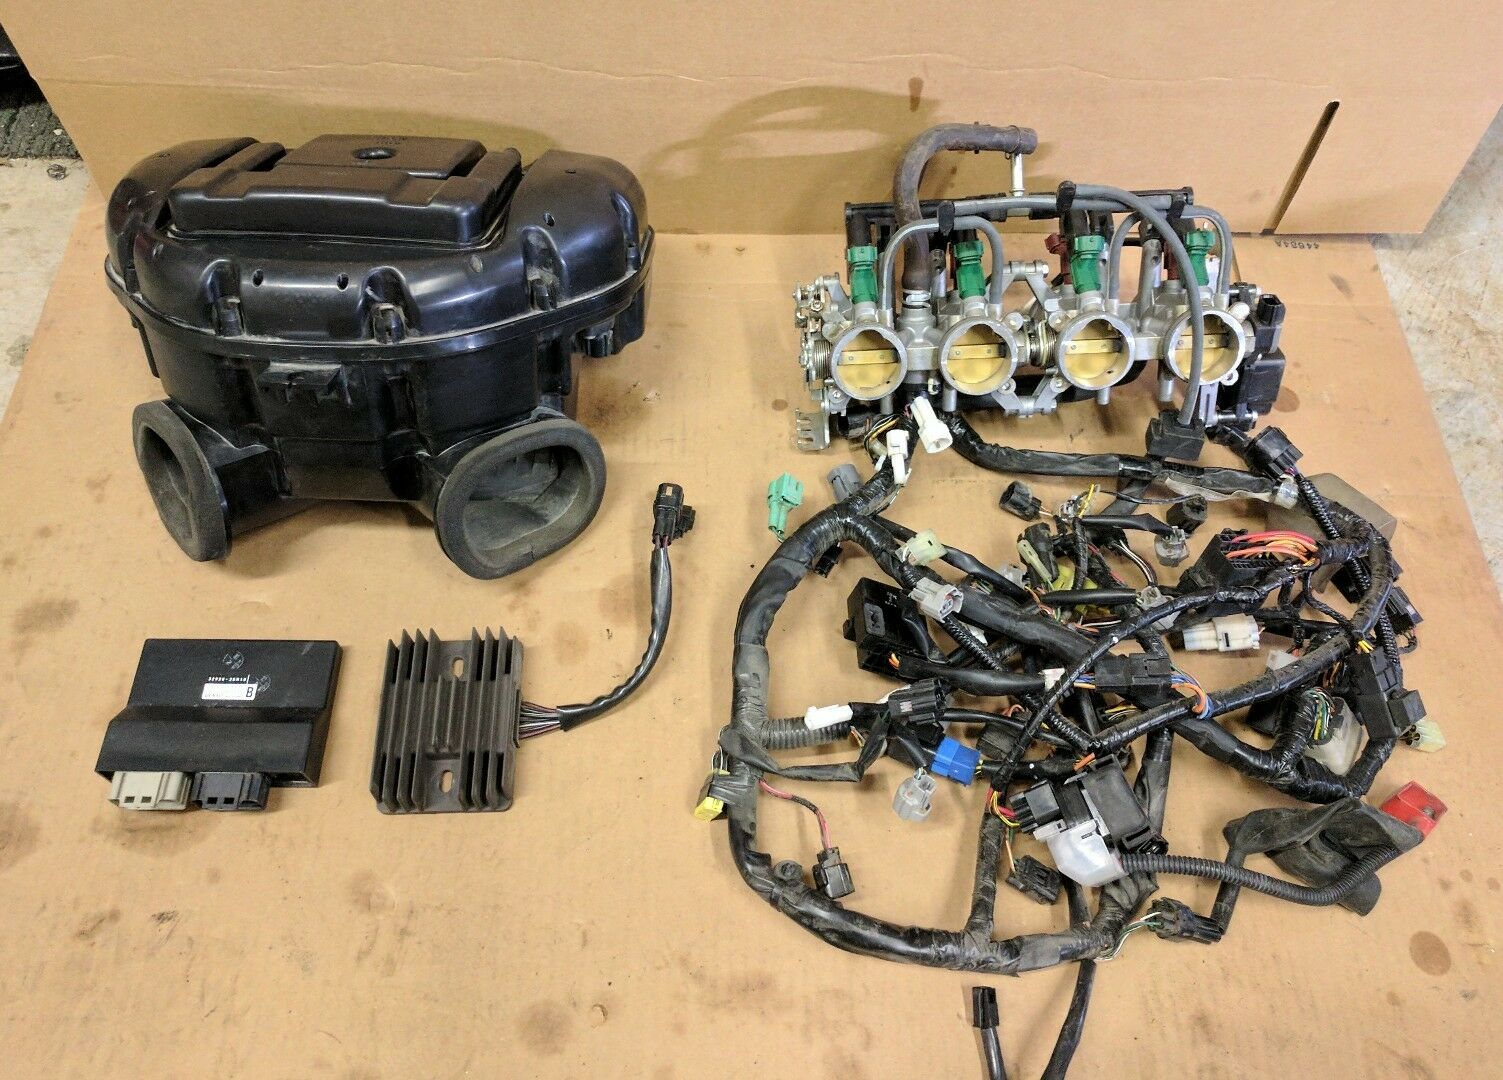 08 09 Suzuki Gsxr 750 Ecu Wiring Harness Air Box Throttle Bodies Rectifier 1 Of 3only 3 Available See More